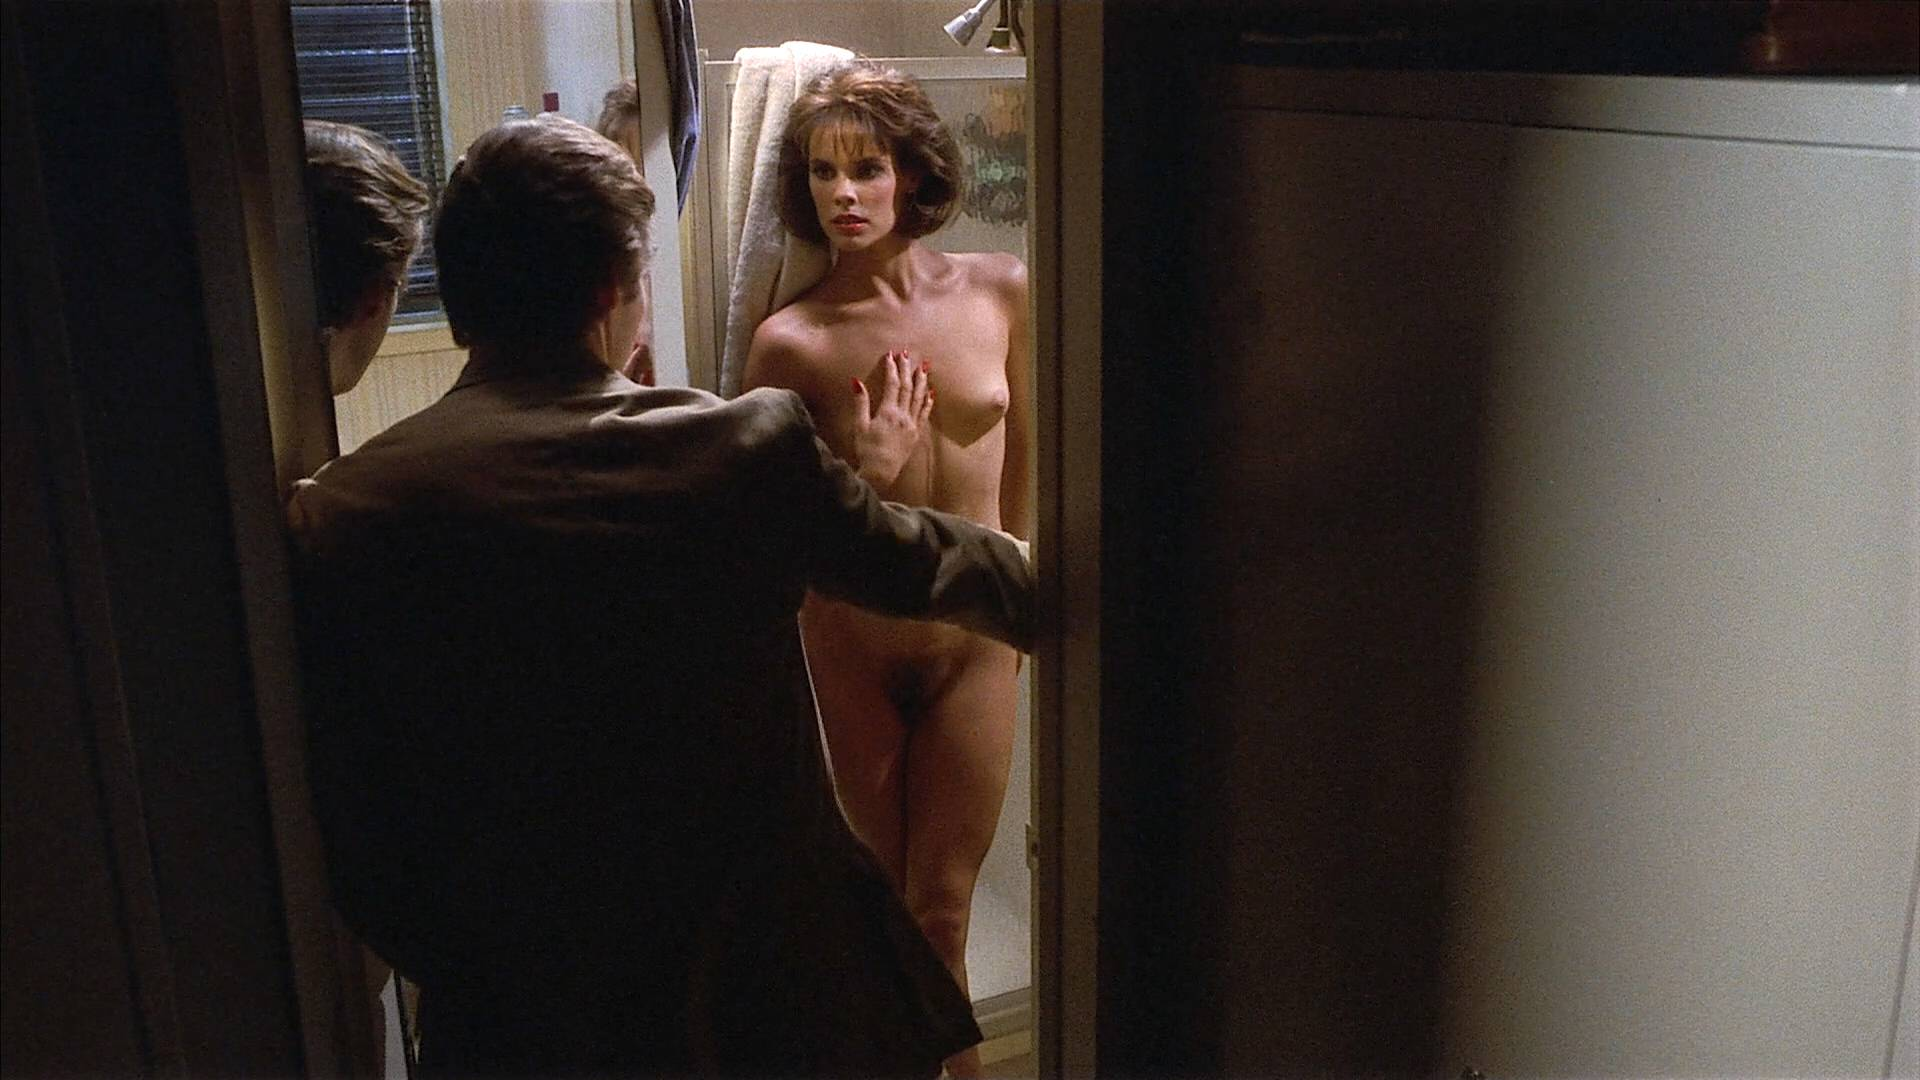 Alexandra Paul nude full frontal and Rosanna Arquette hot - 8 Million Ways to Die (1986) HD 1080p BluRay (7)